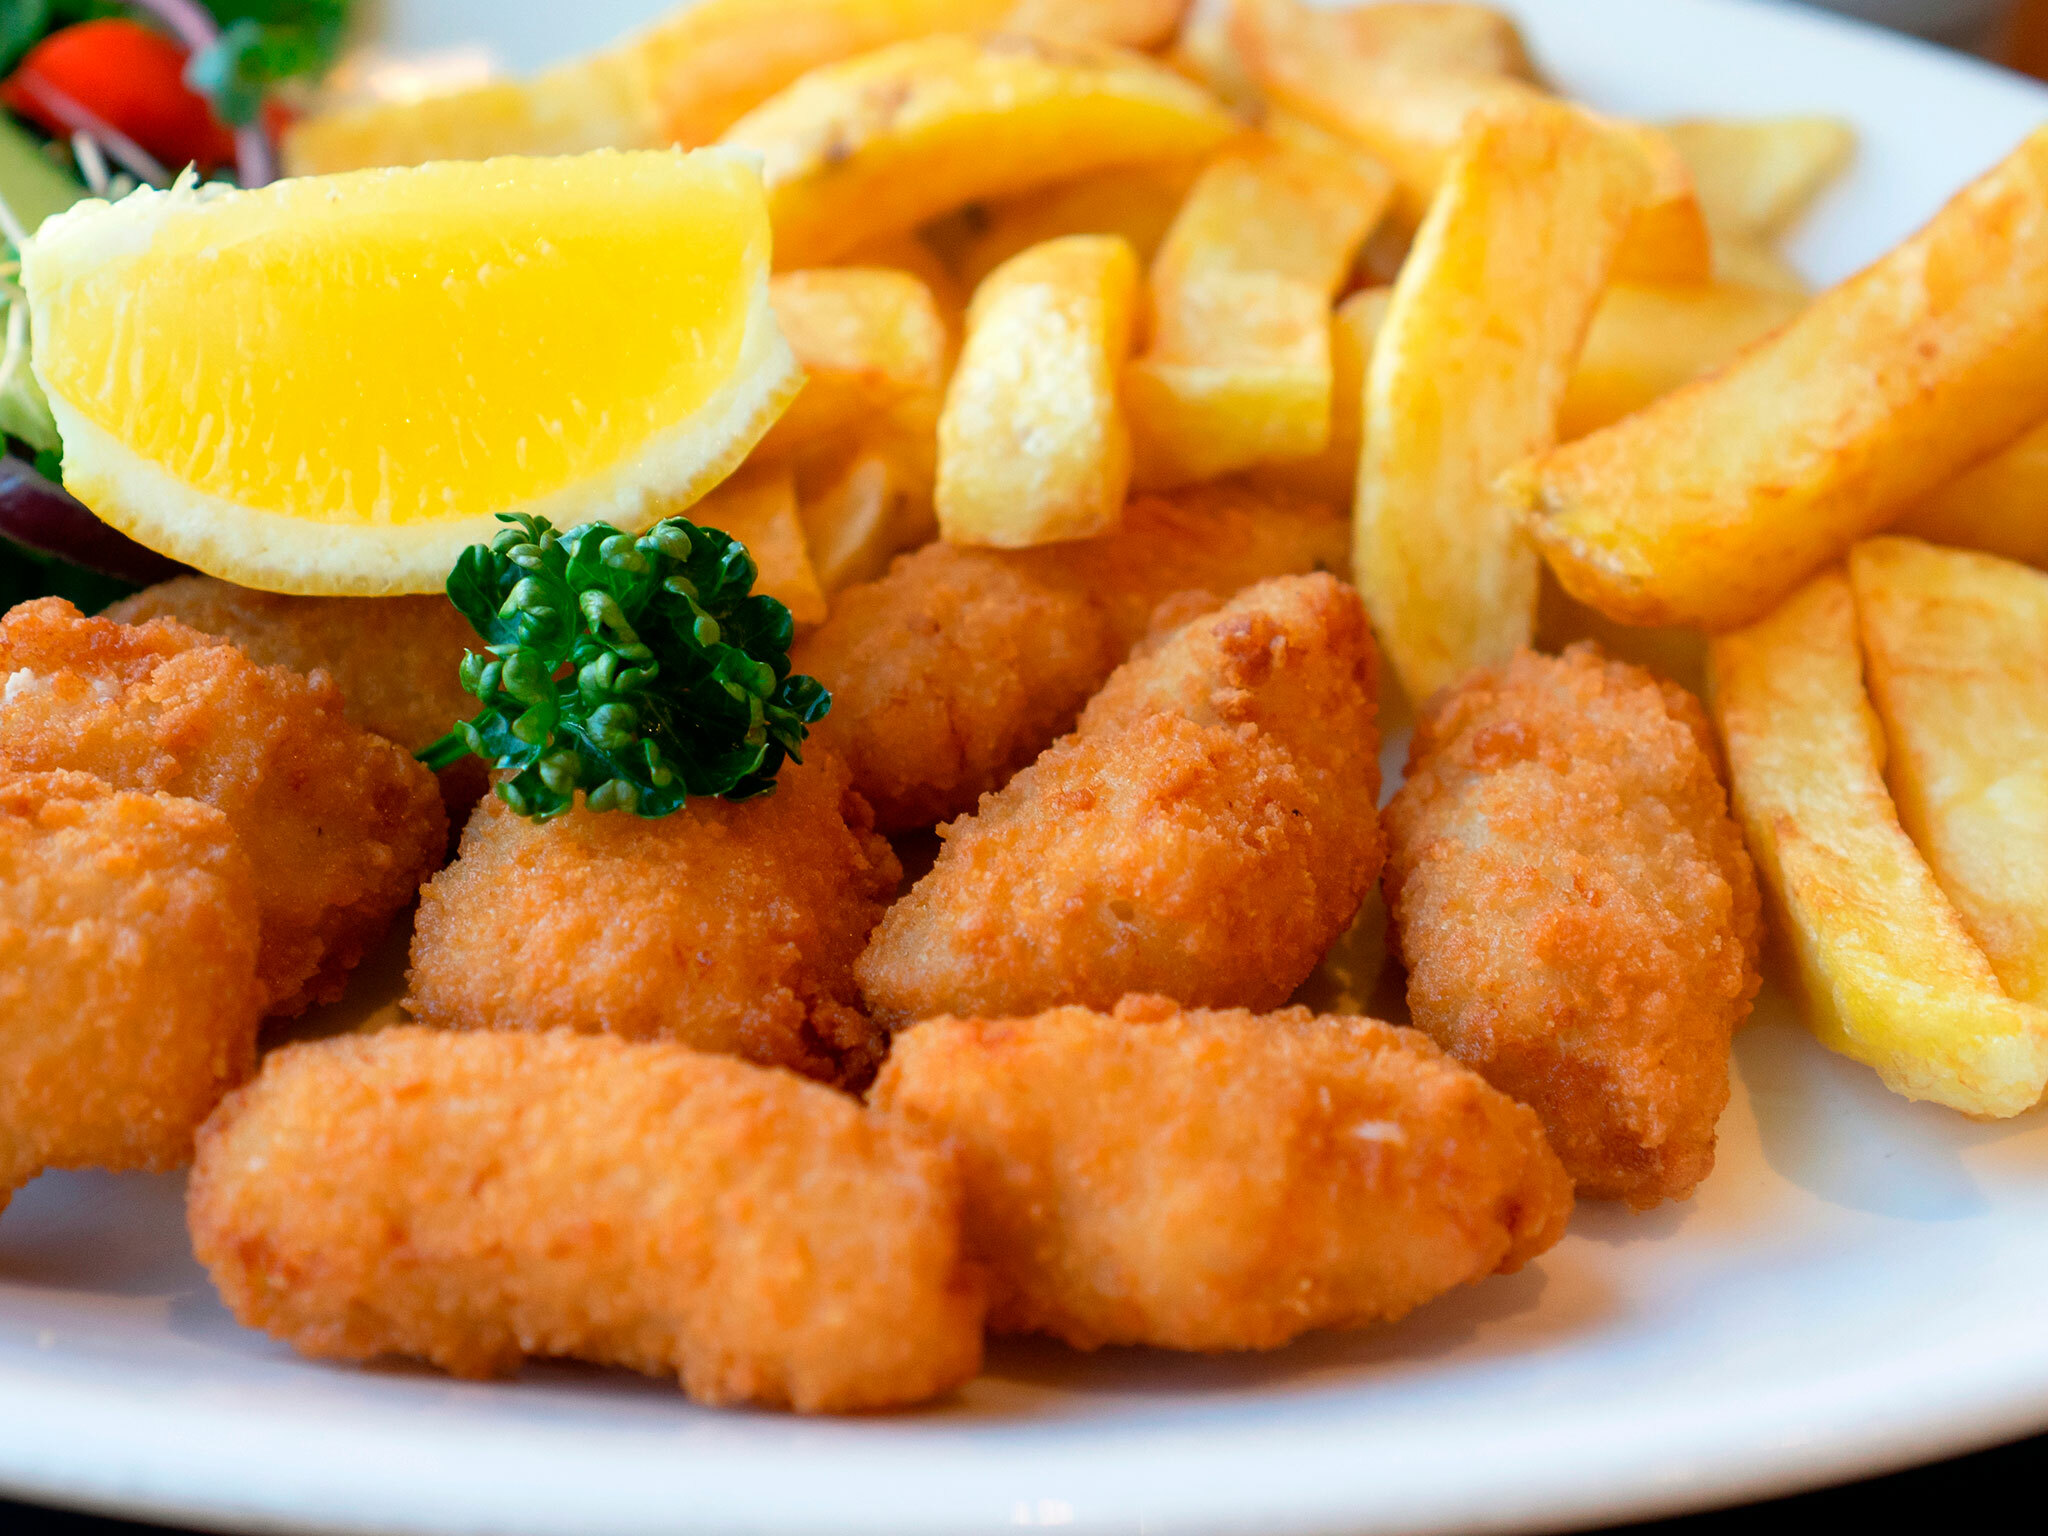 Harbourside Fish and Chips